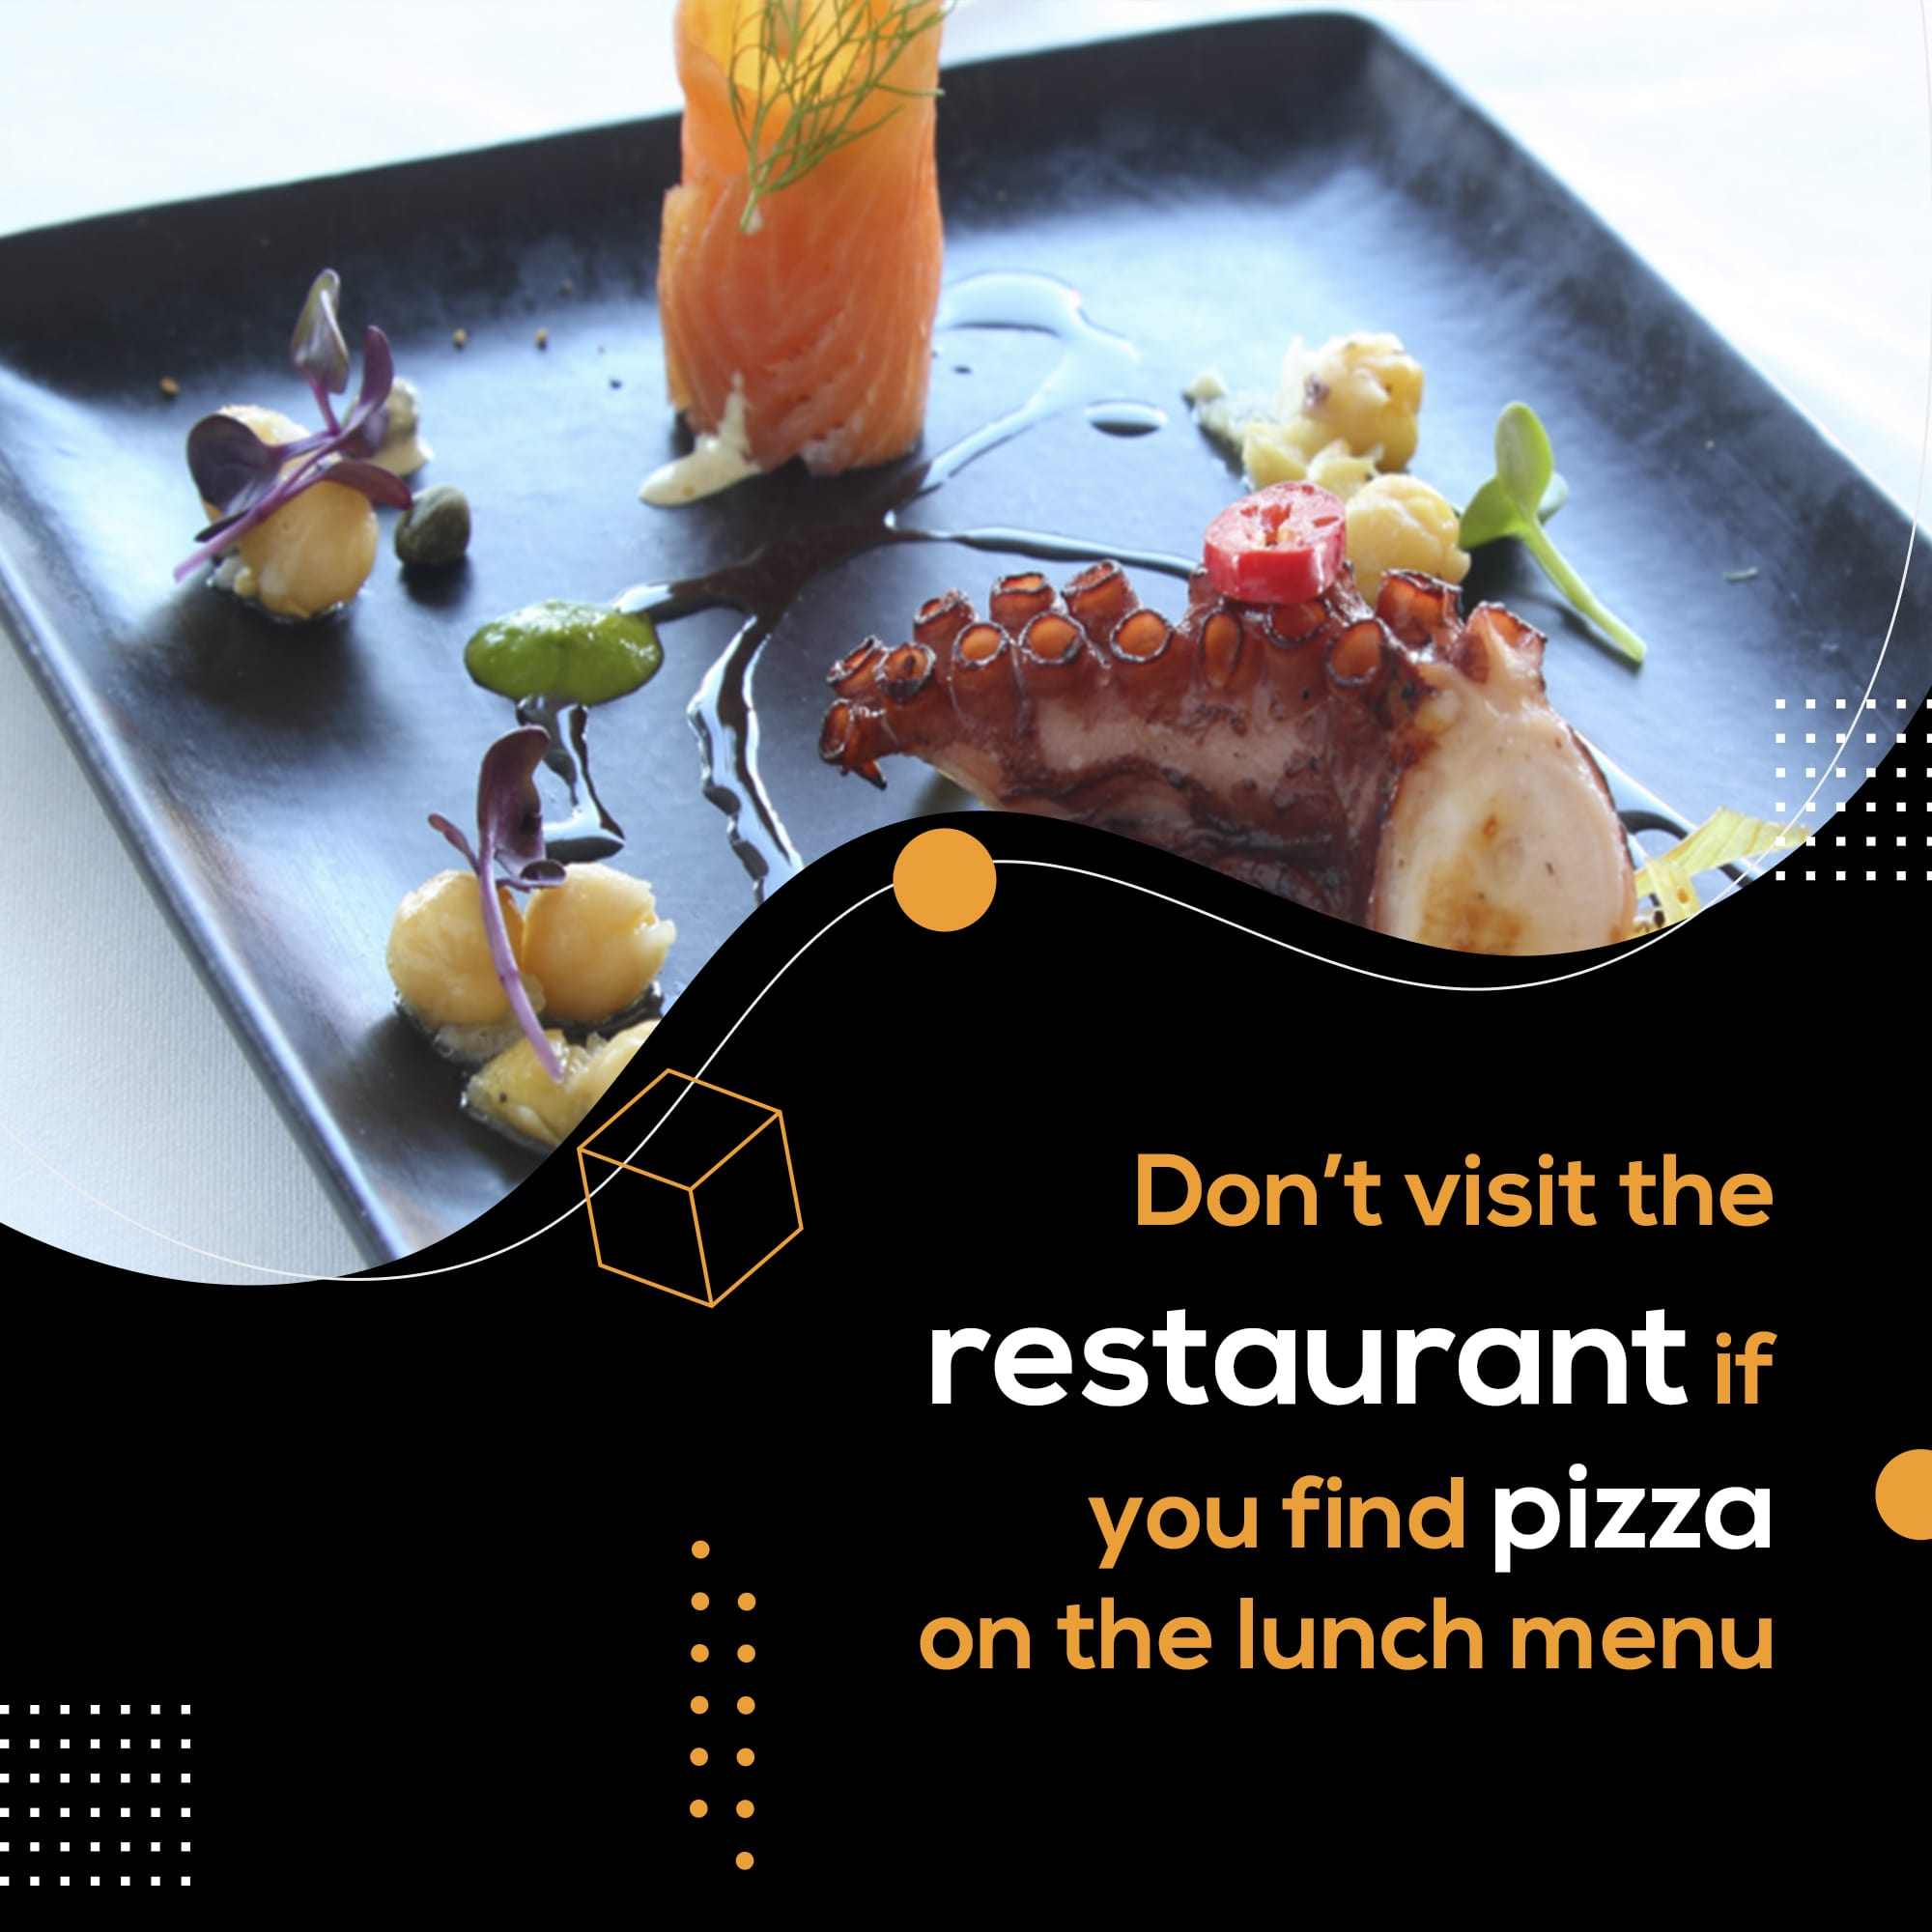 Don't visit the restaurant if you find pizza on the lunch menu